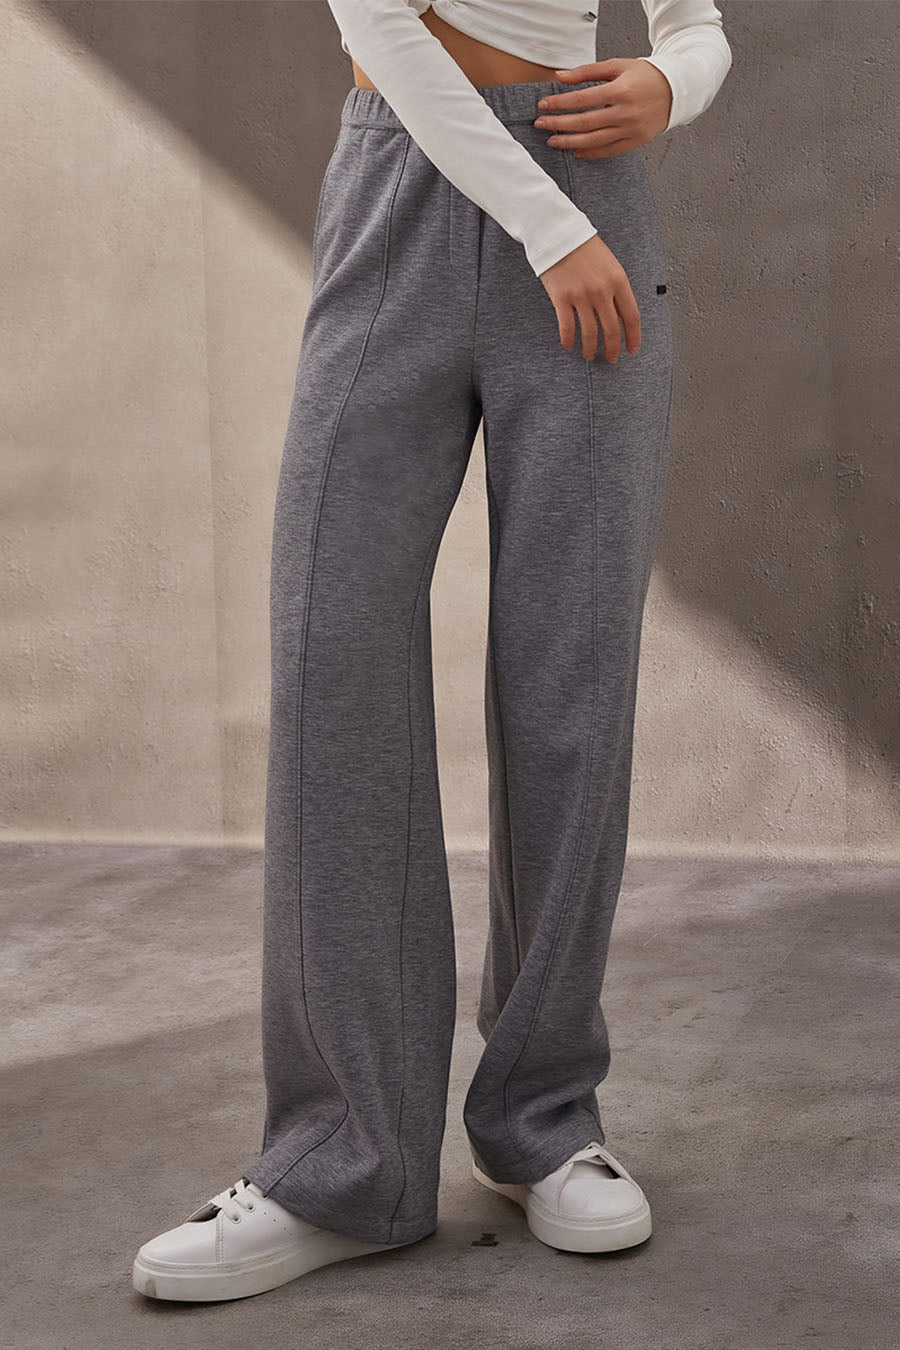 Comfort in Motion Pant